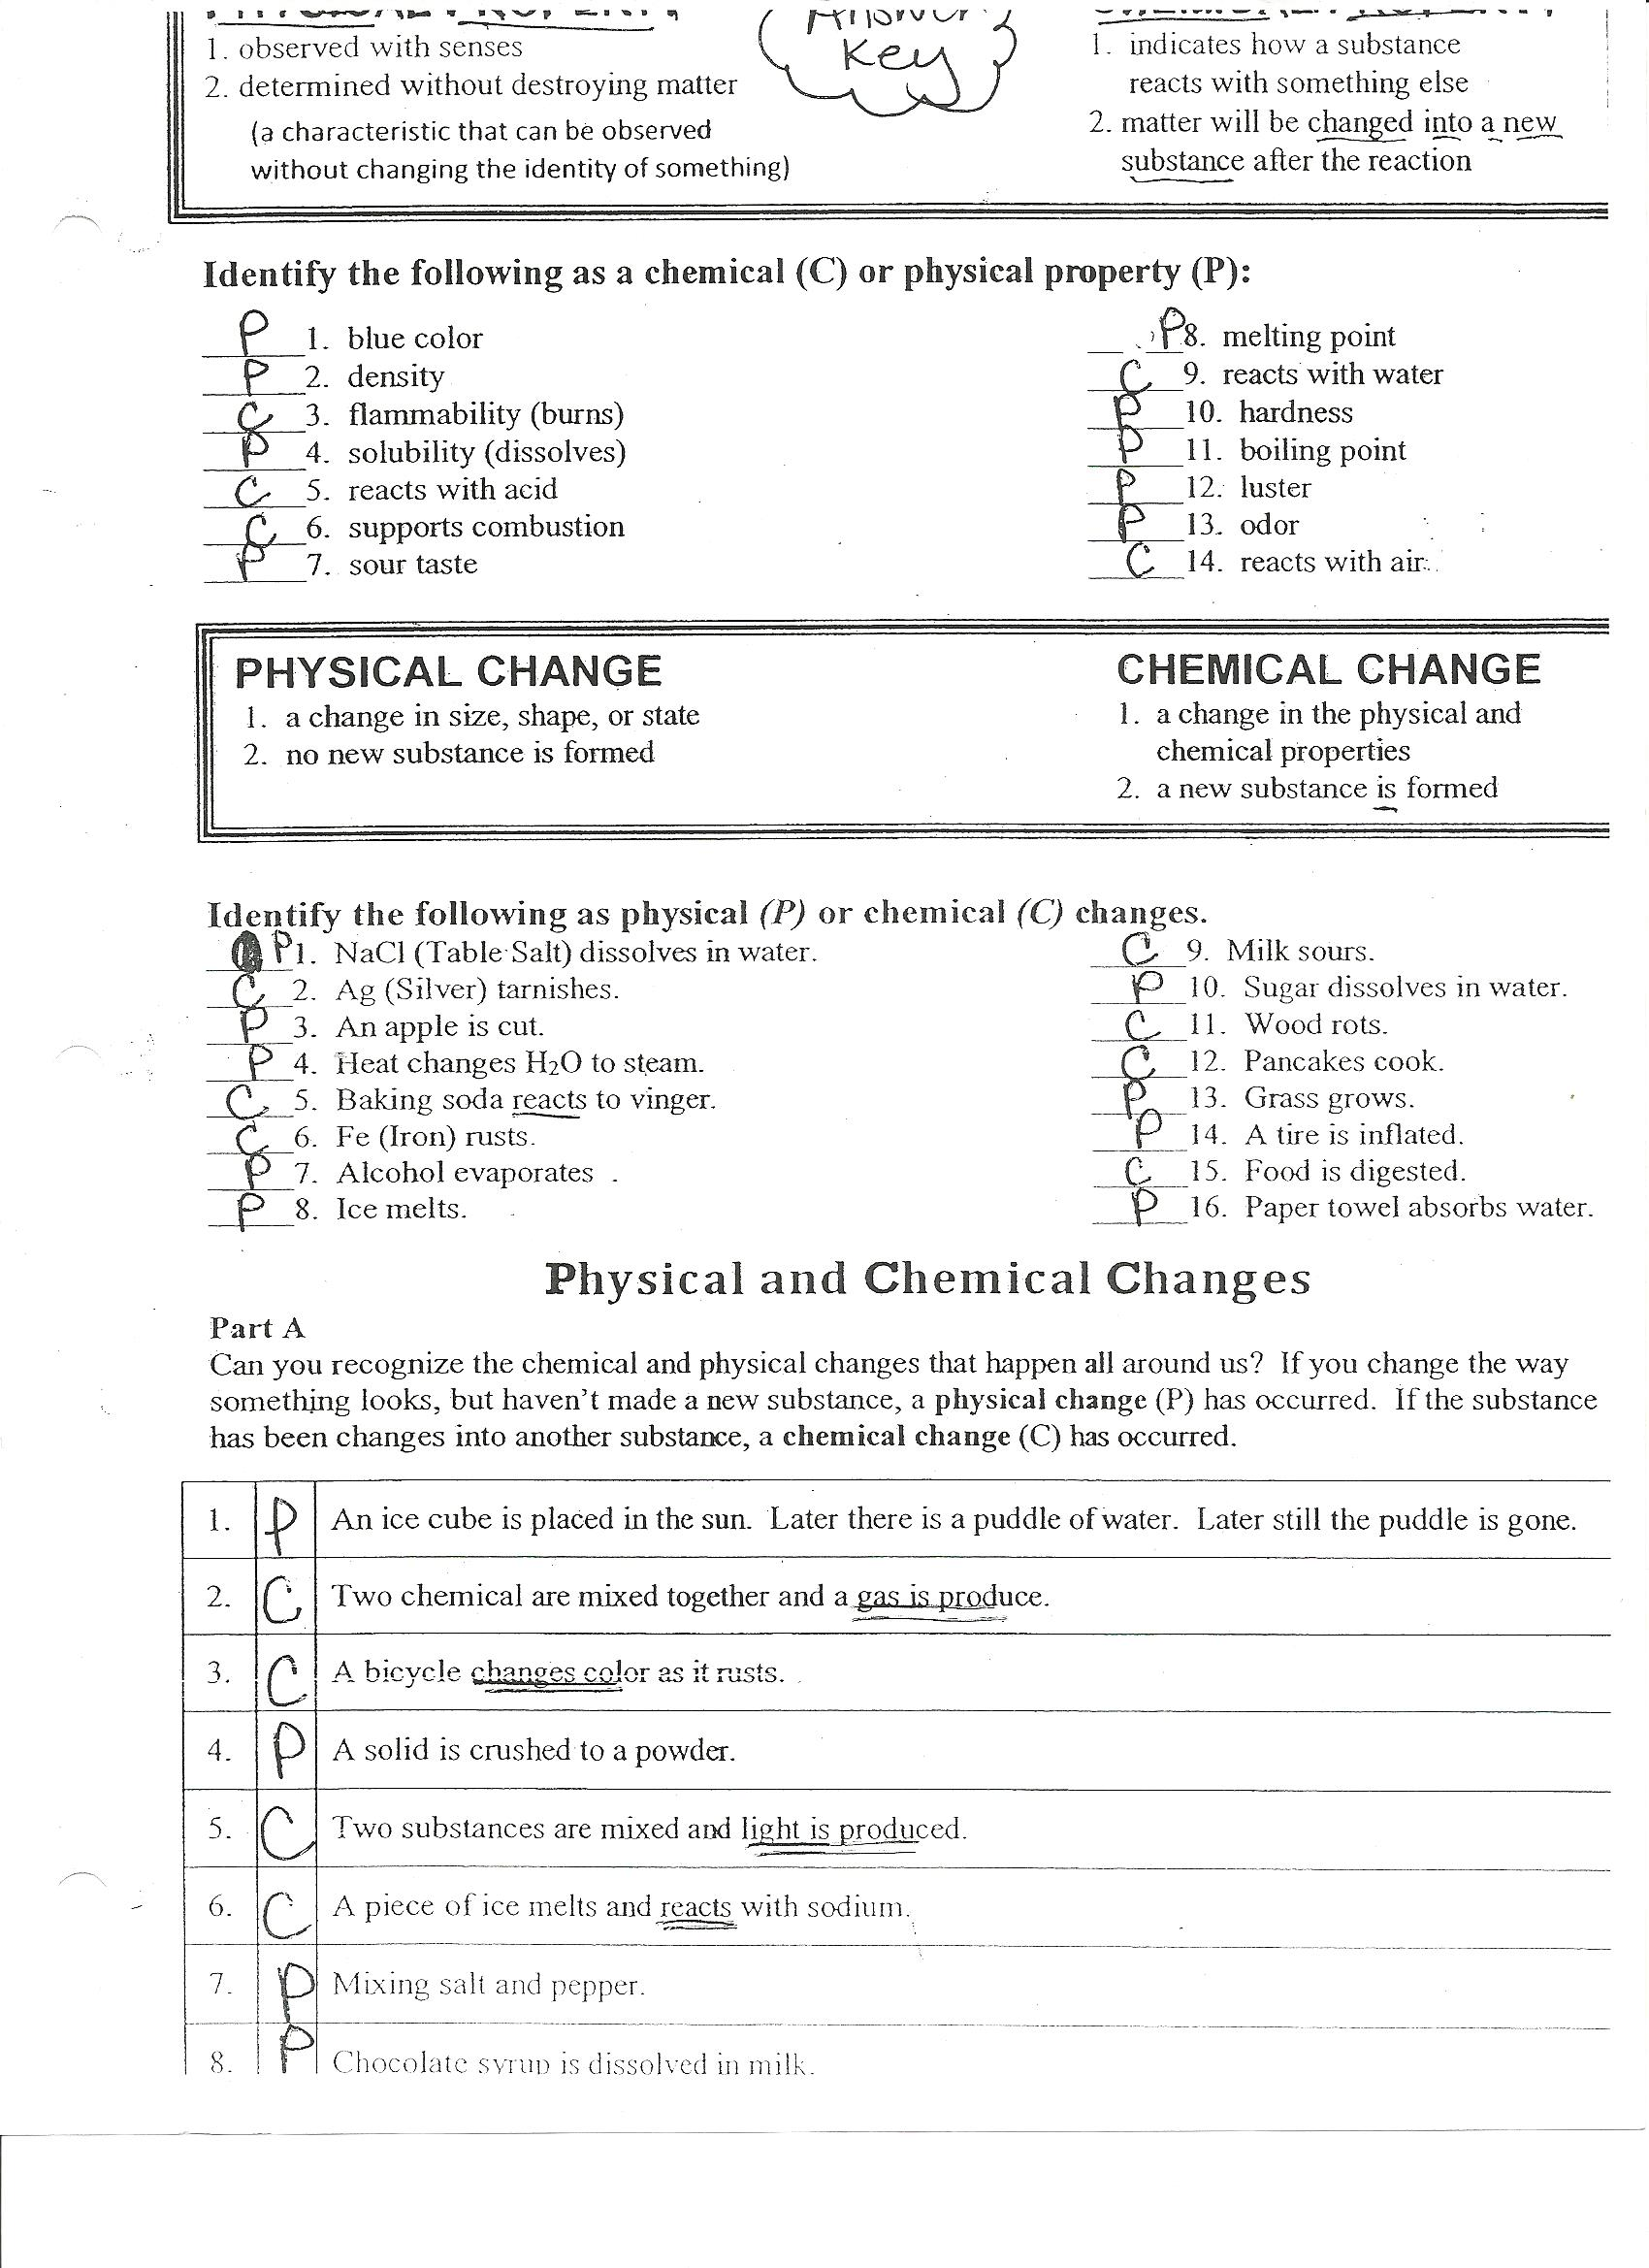 Worksheets Chemical And Physical Changes Worksheet